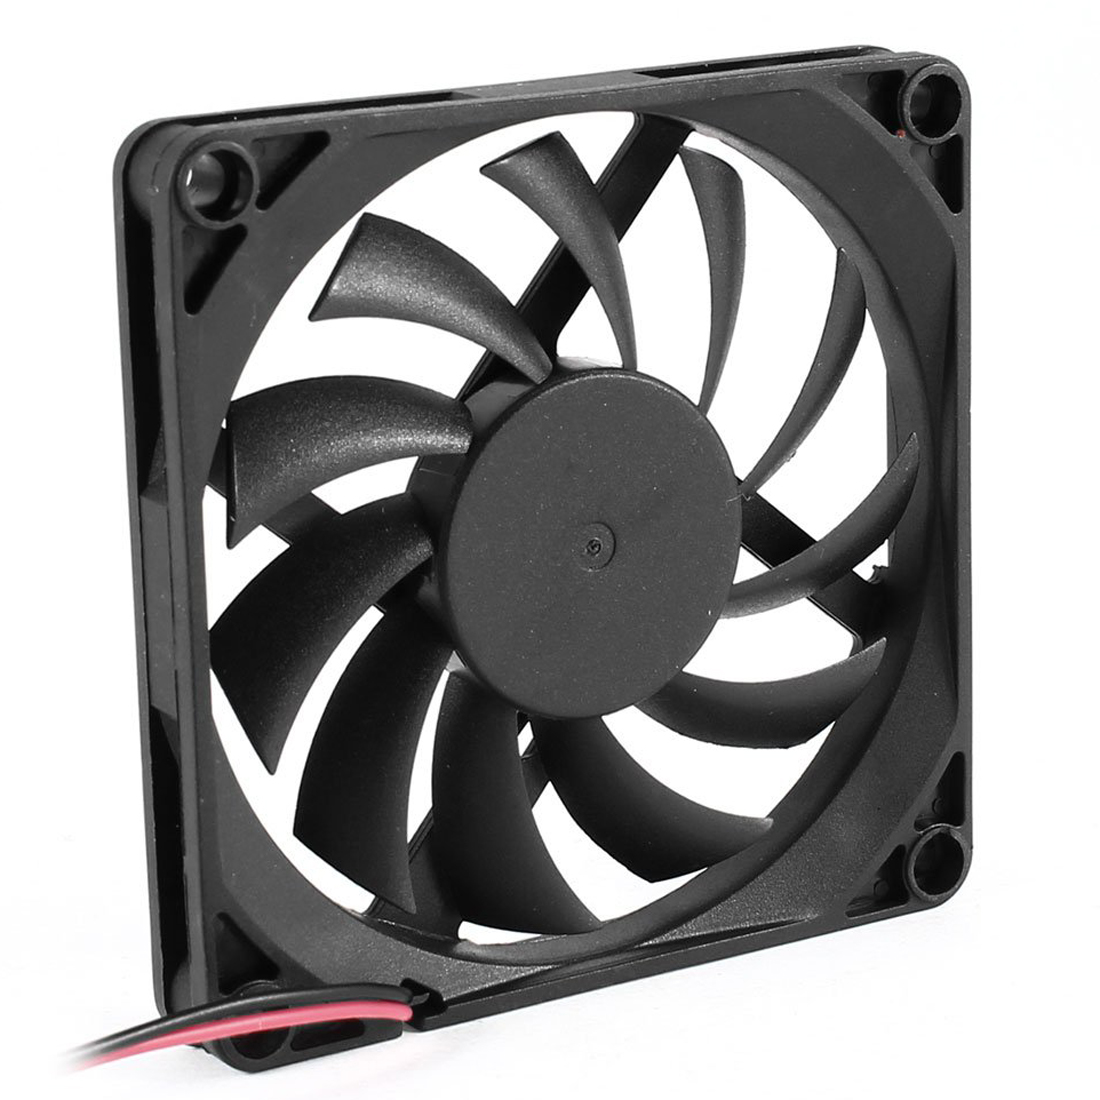 Hot 80mm 2 Pin Connector Cooling Fan for Computer Case CPU Cooler Radiator 2200rpm cpu quiet fan cooler cooling heatsink for intel lga775 1155 amd am2 3 l059 new hot